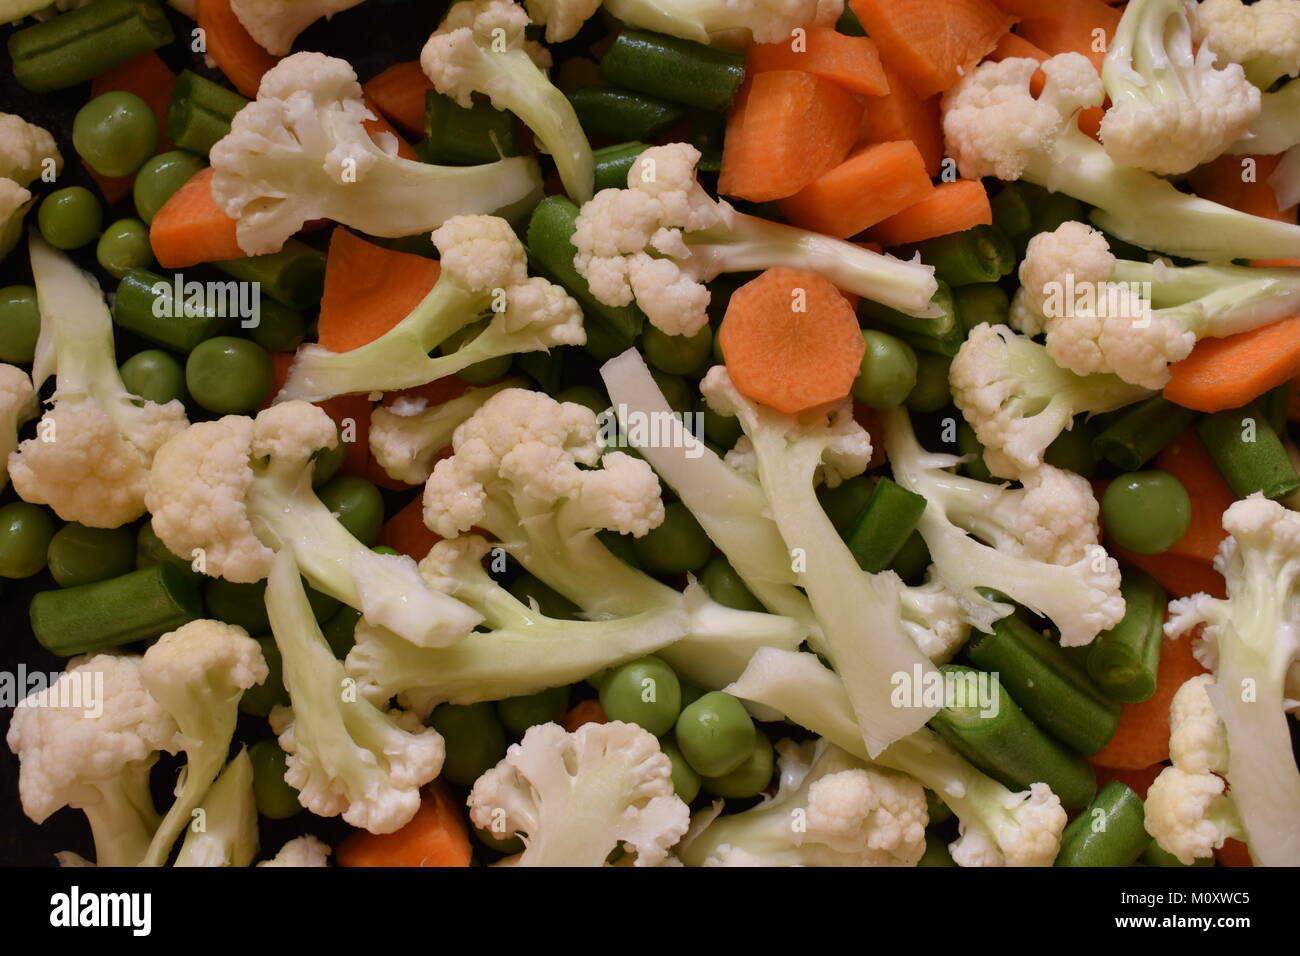 Illustration Green Beans High Resolution Stock Photography and ...